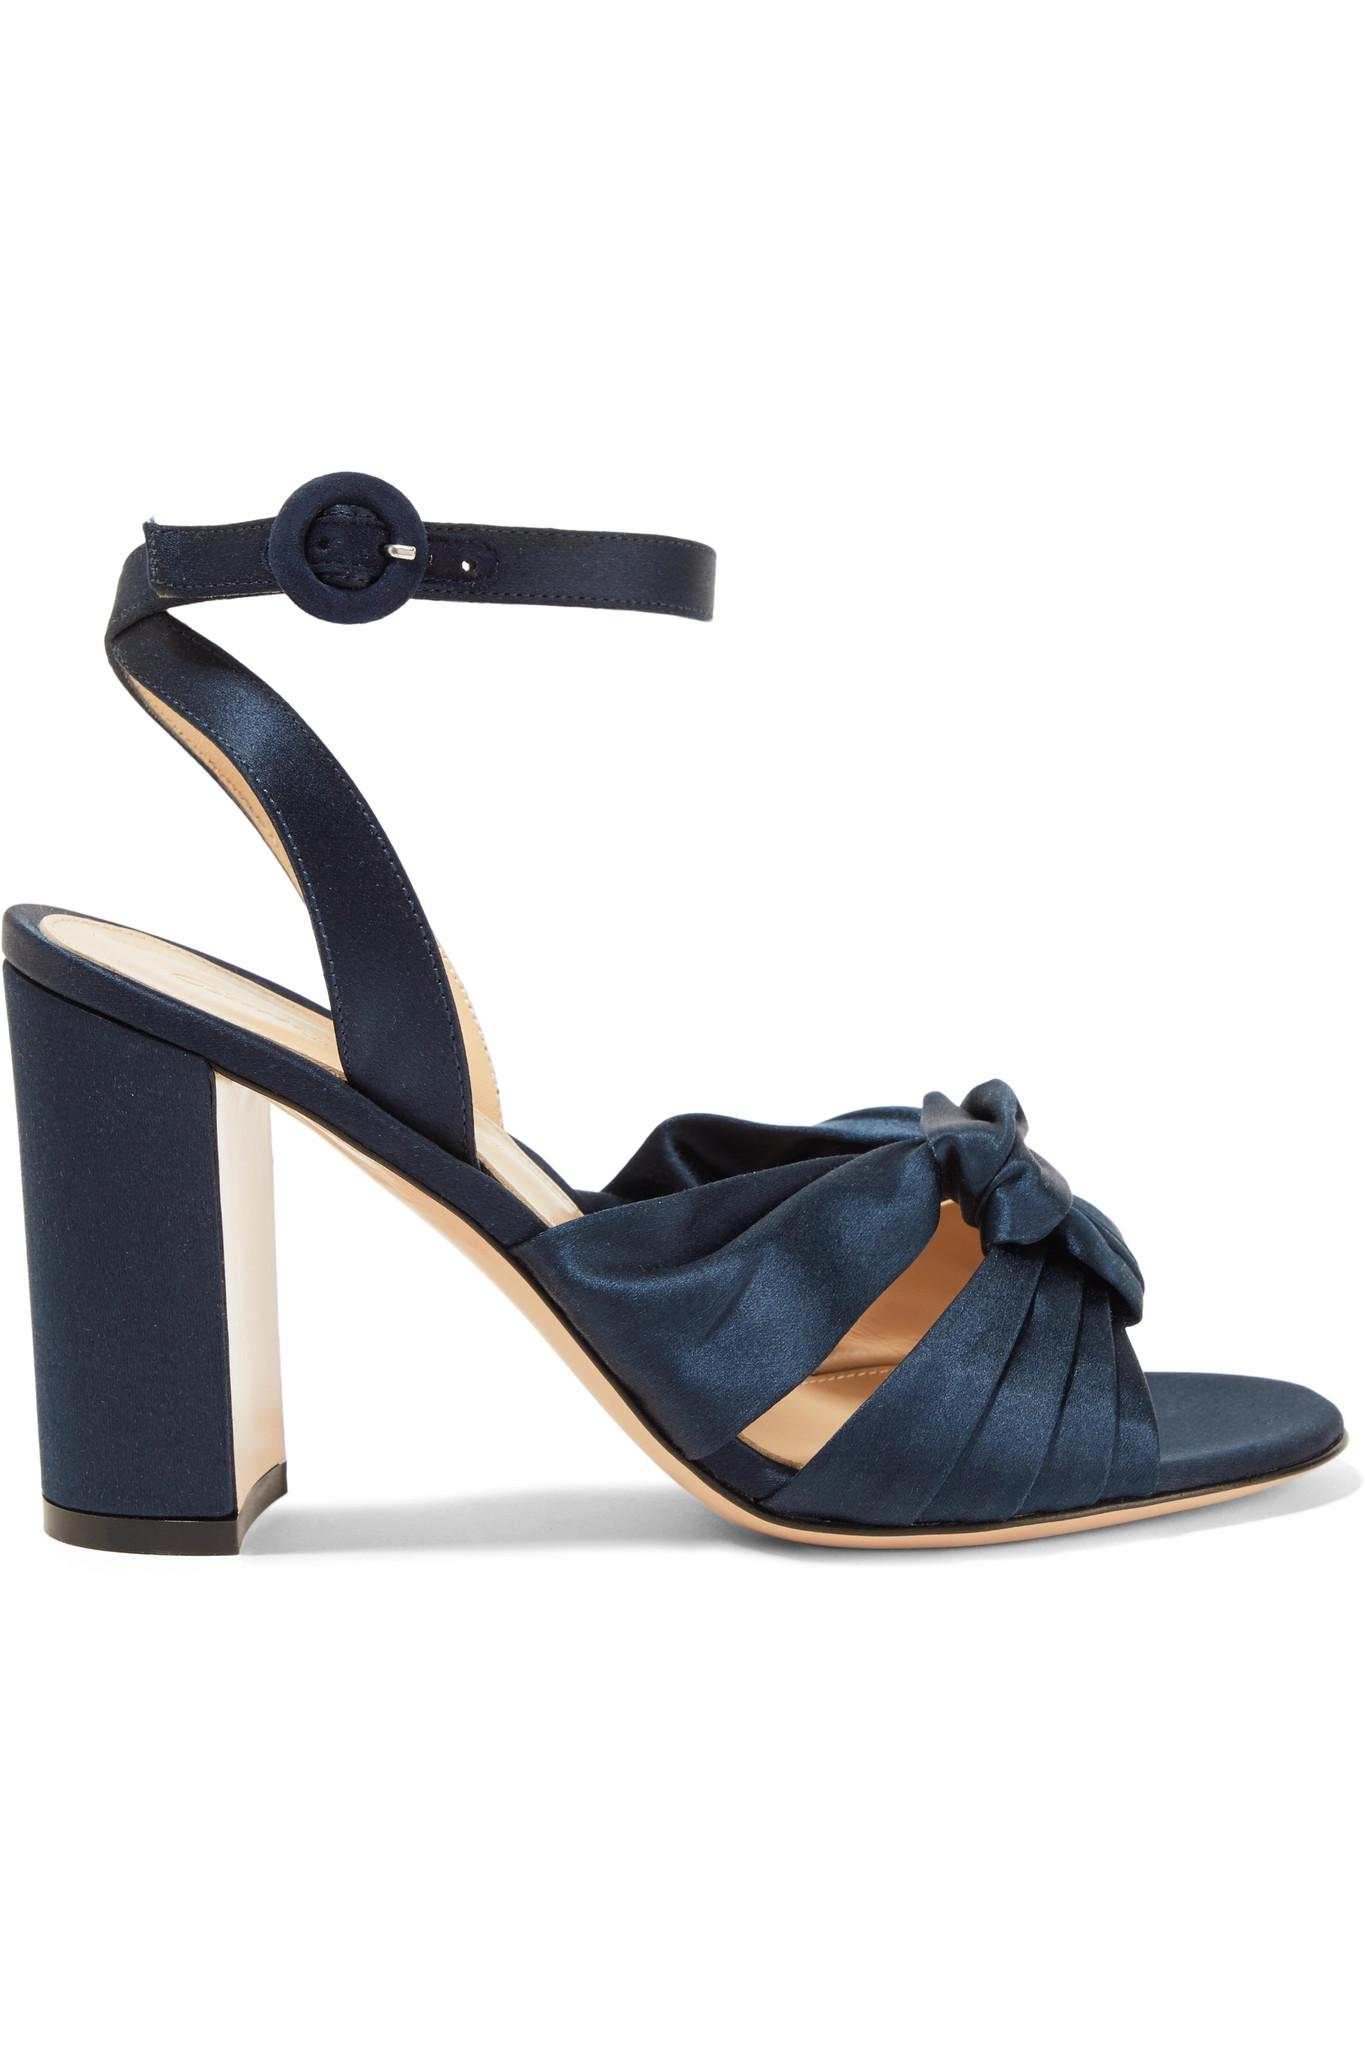 Gianvito Rossi. Women's Blue Loren 85 Knotted Satin Sandals